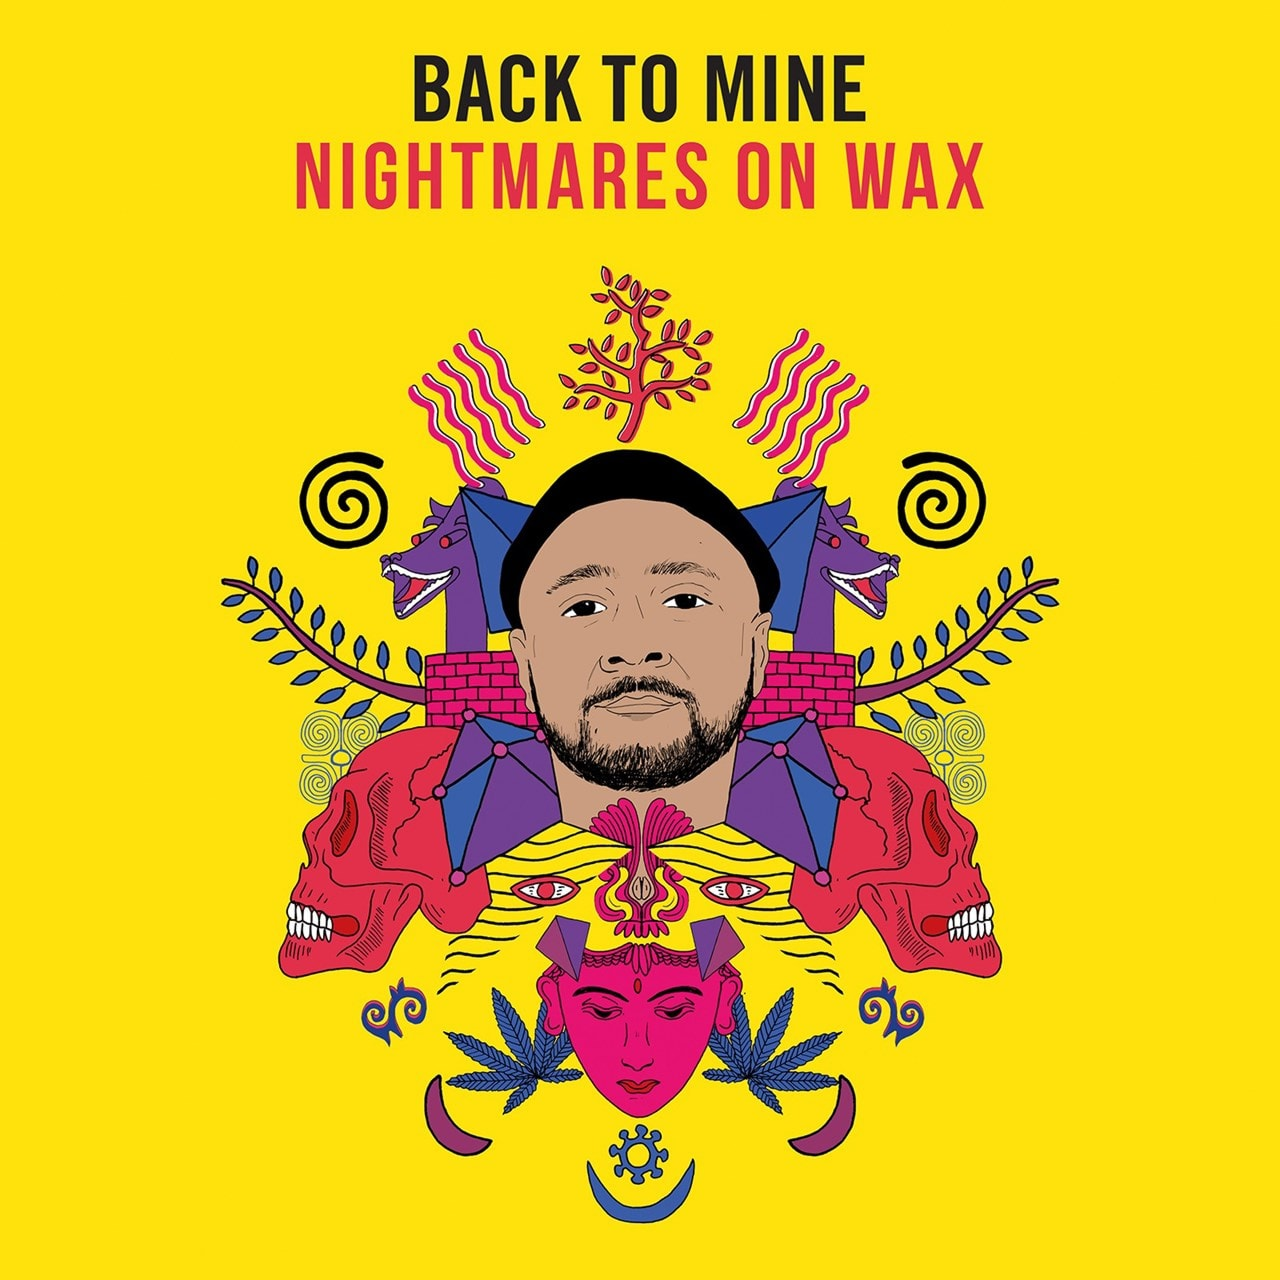 Nightmares On Wax - 1